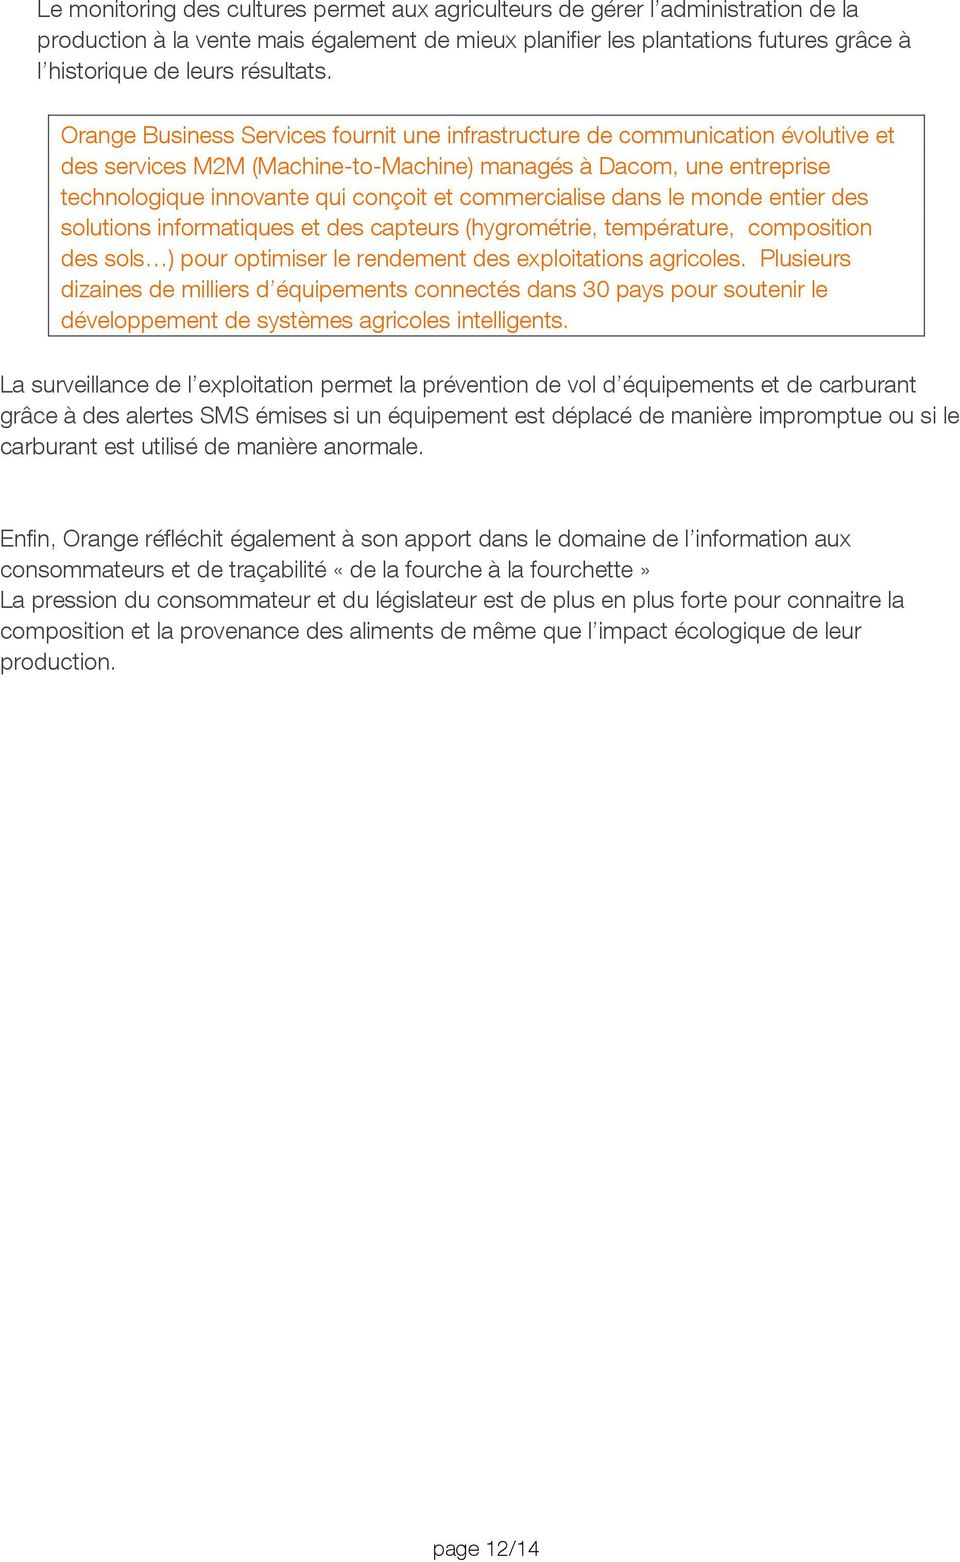 Orange Business Services fournit une infrastructure de communication évolutive et des services M2M (Machine-to-Machine) managés à Dacom, une entreprise technologique innovante qui conçoit et